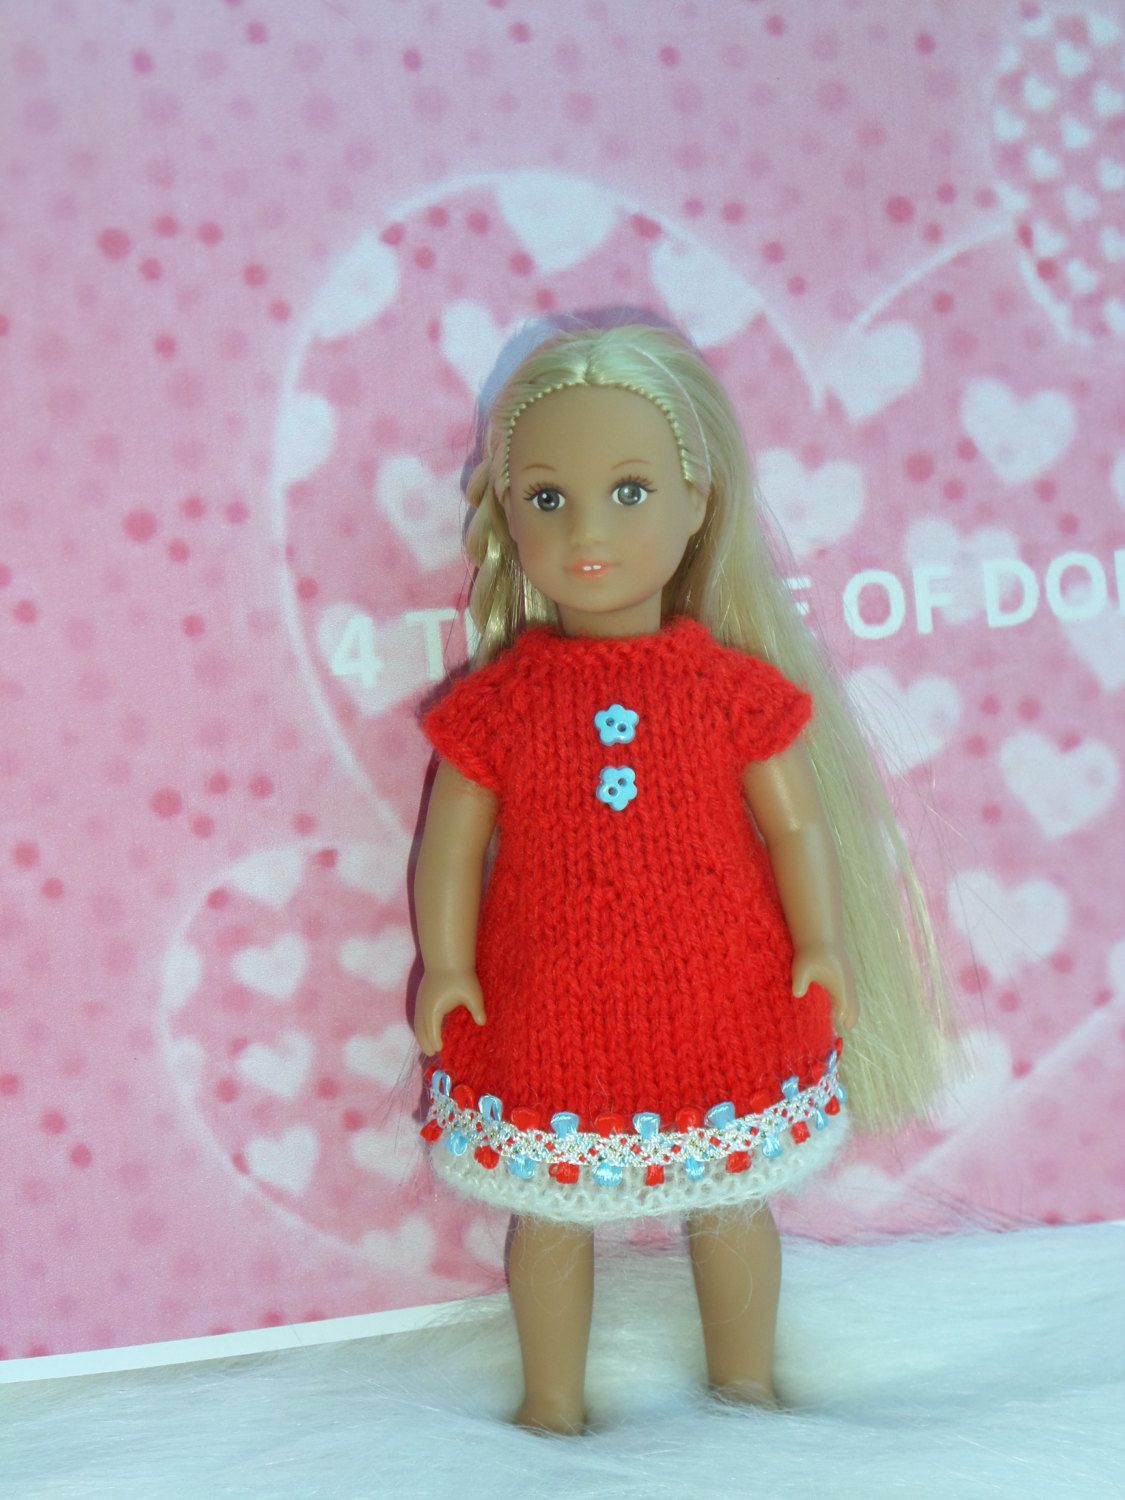 Mini American Girl / Our Generation  mini dolls hand knitted dress by 4THELOVEOFDOLLS on Etsy